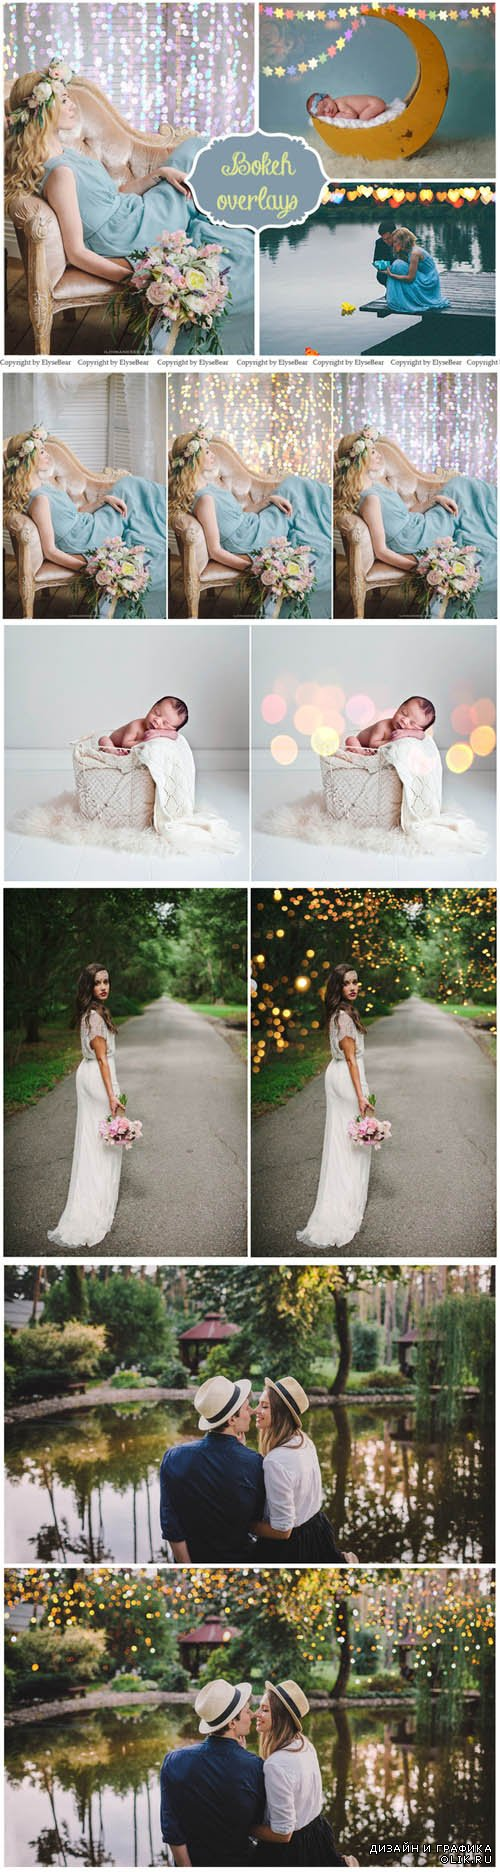 45 Bokeh Photo Overlays